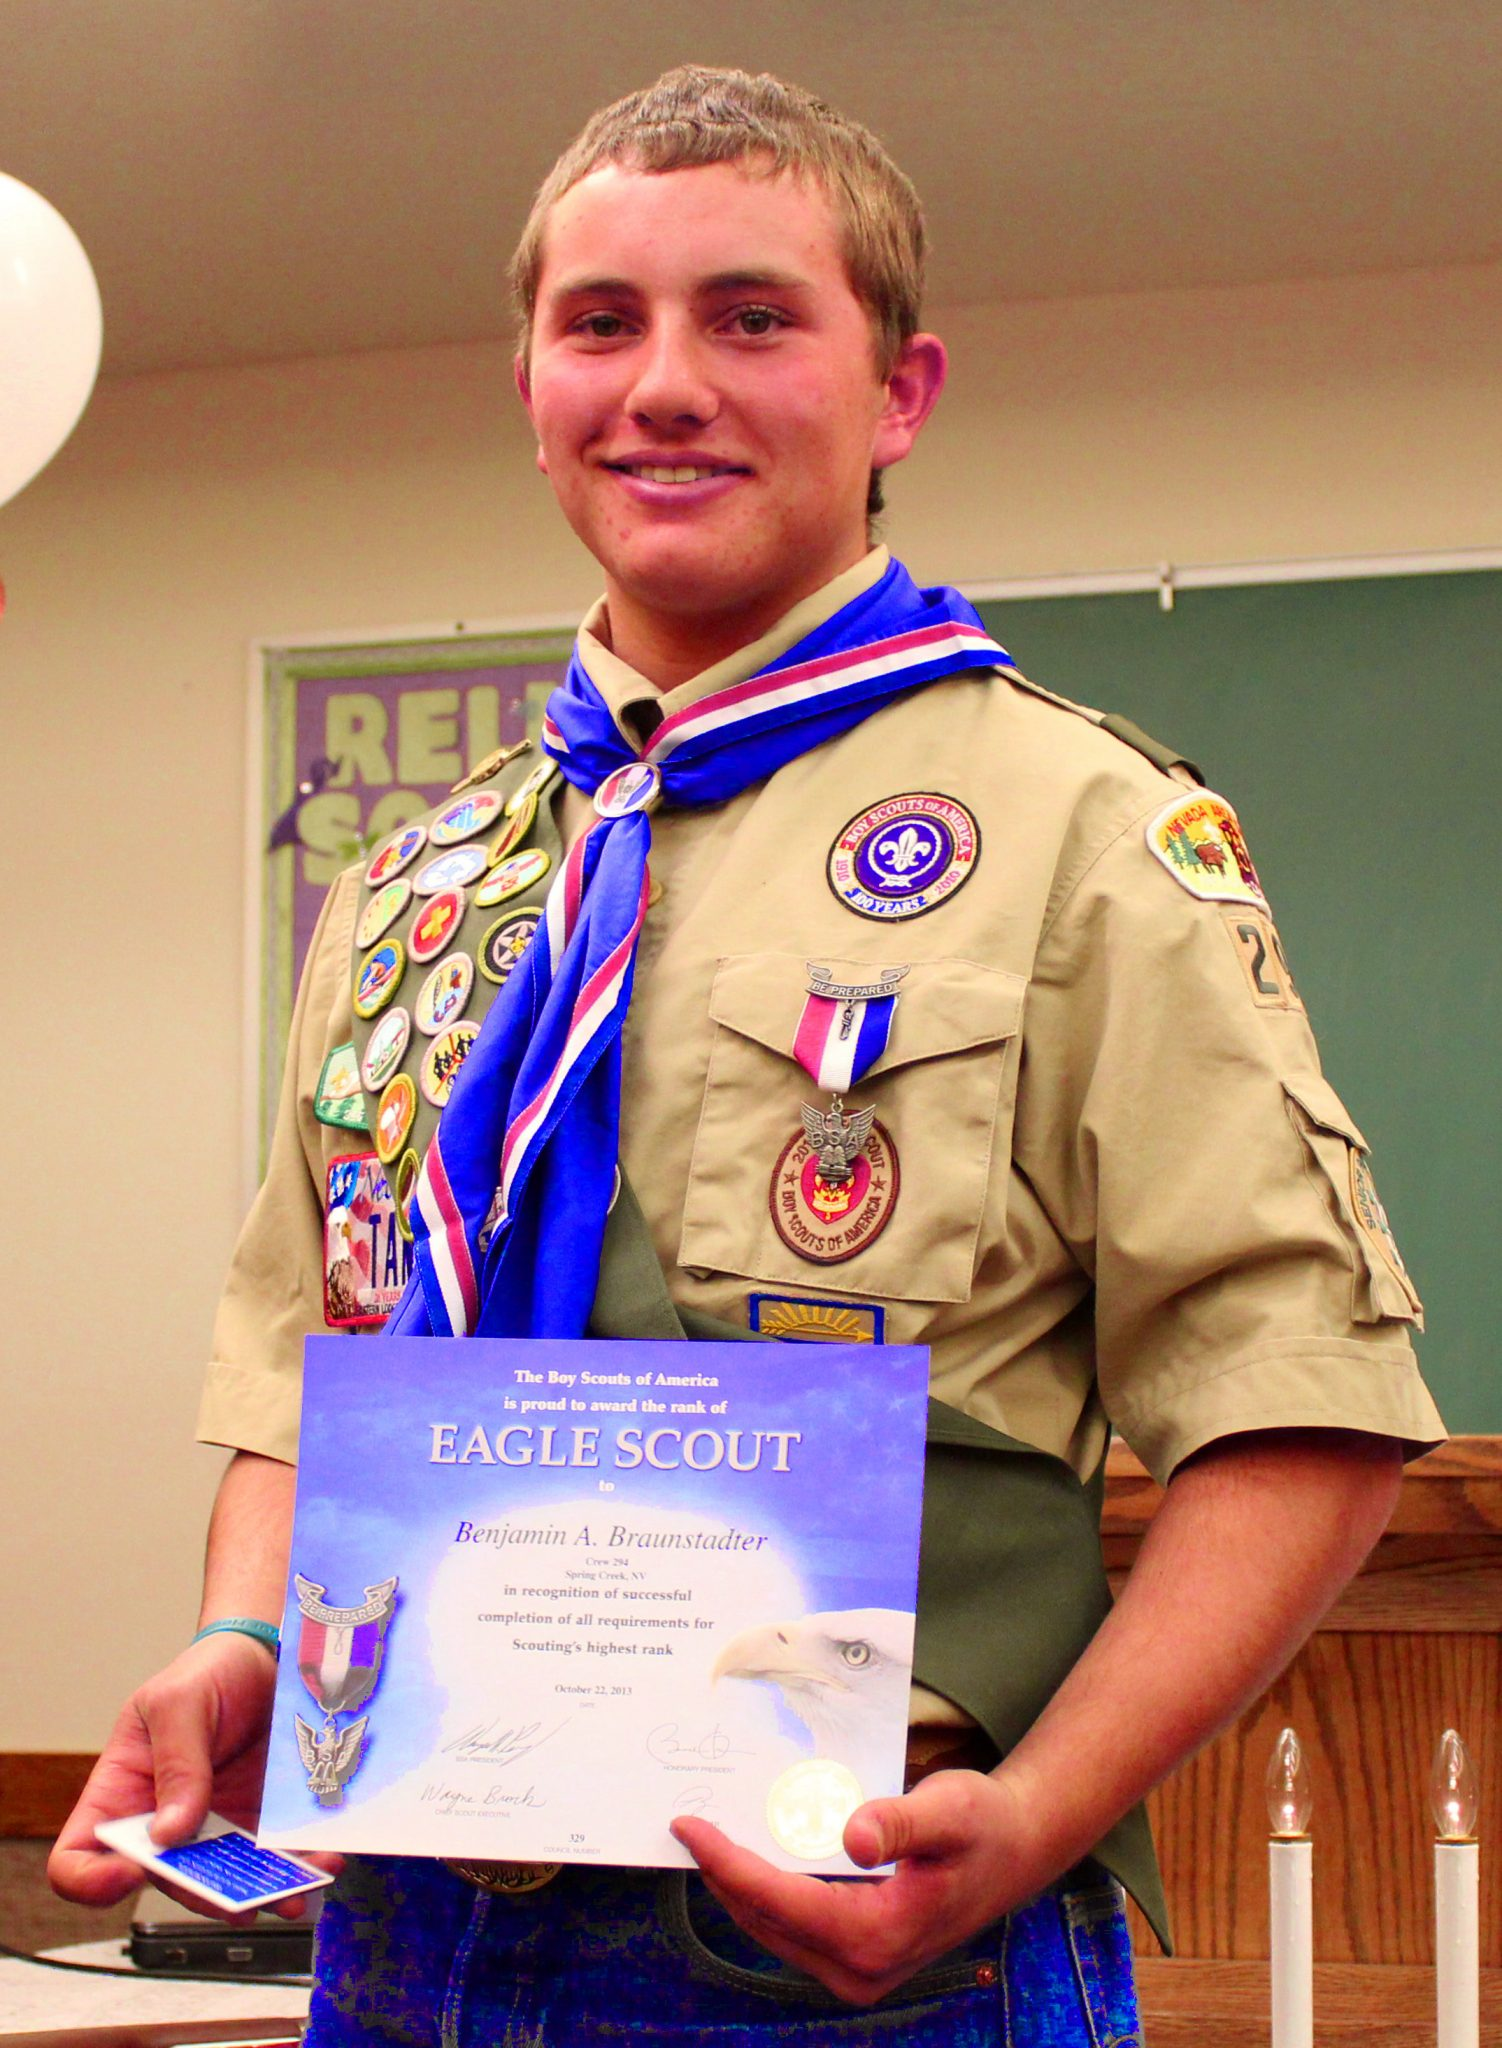 Grandson of local earns Boy Scout eagle rank